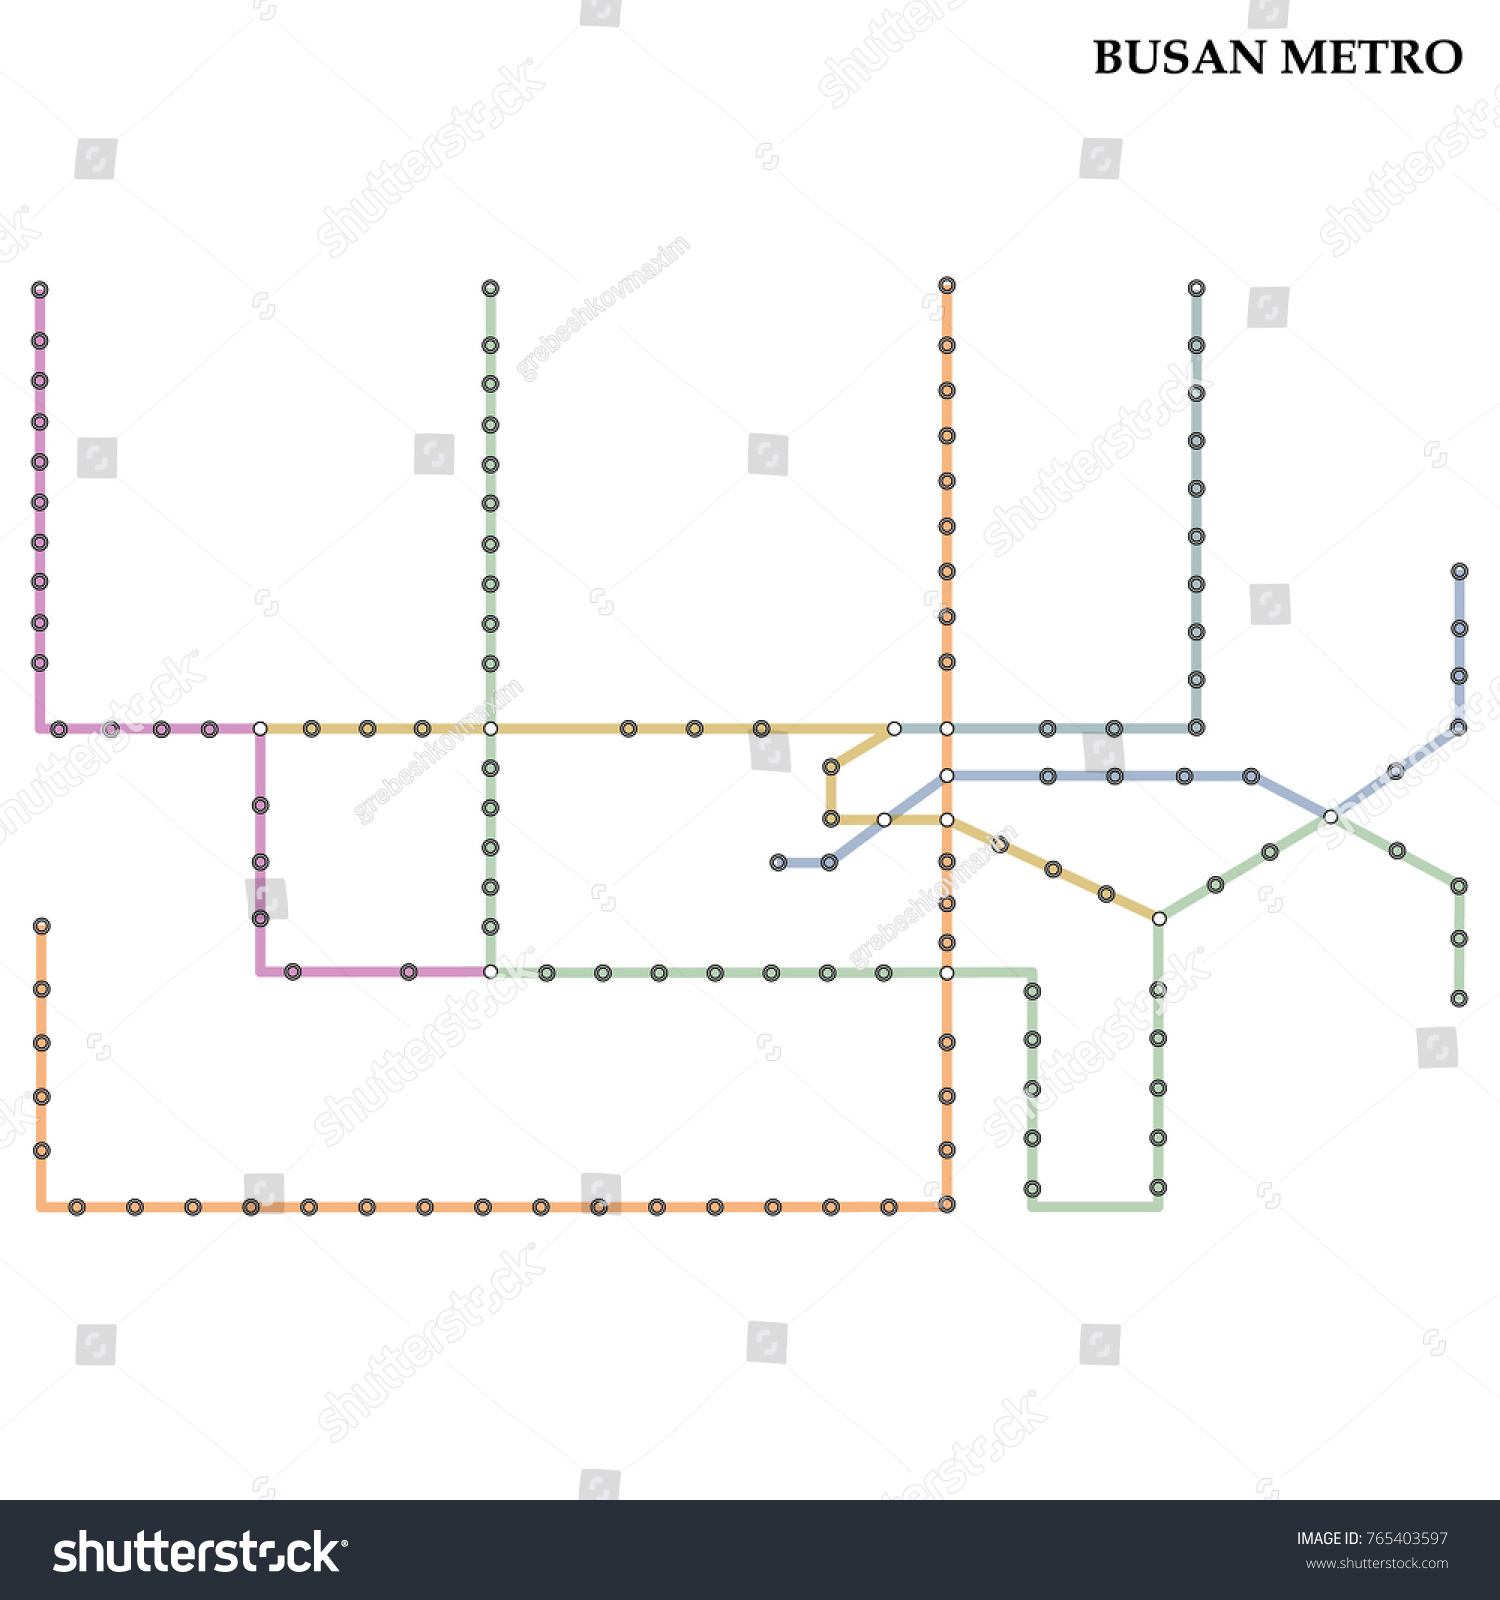 Map Busan Metro Subway Template City Stock Vector Royalty Free